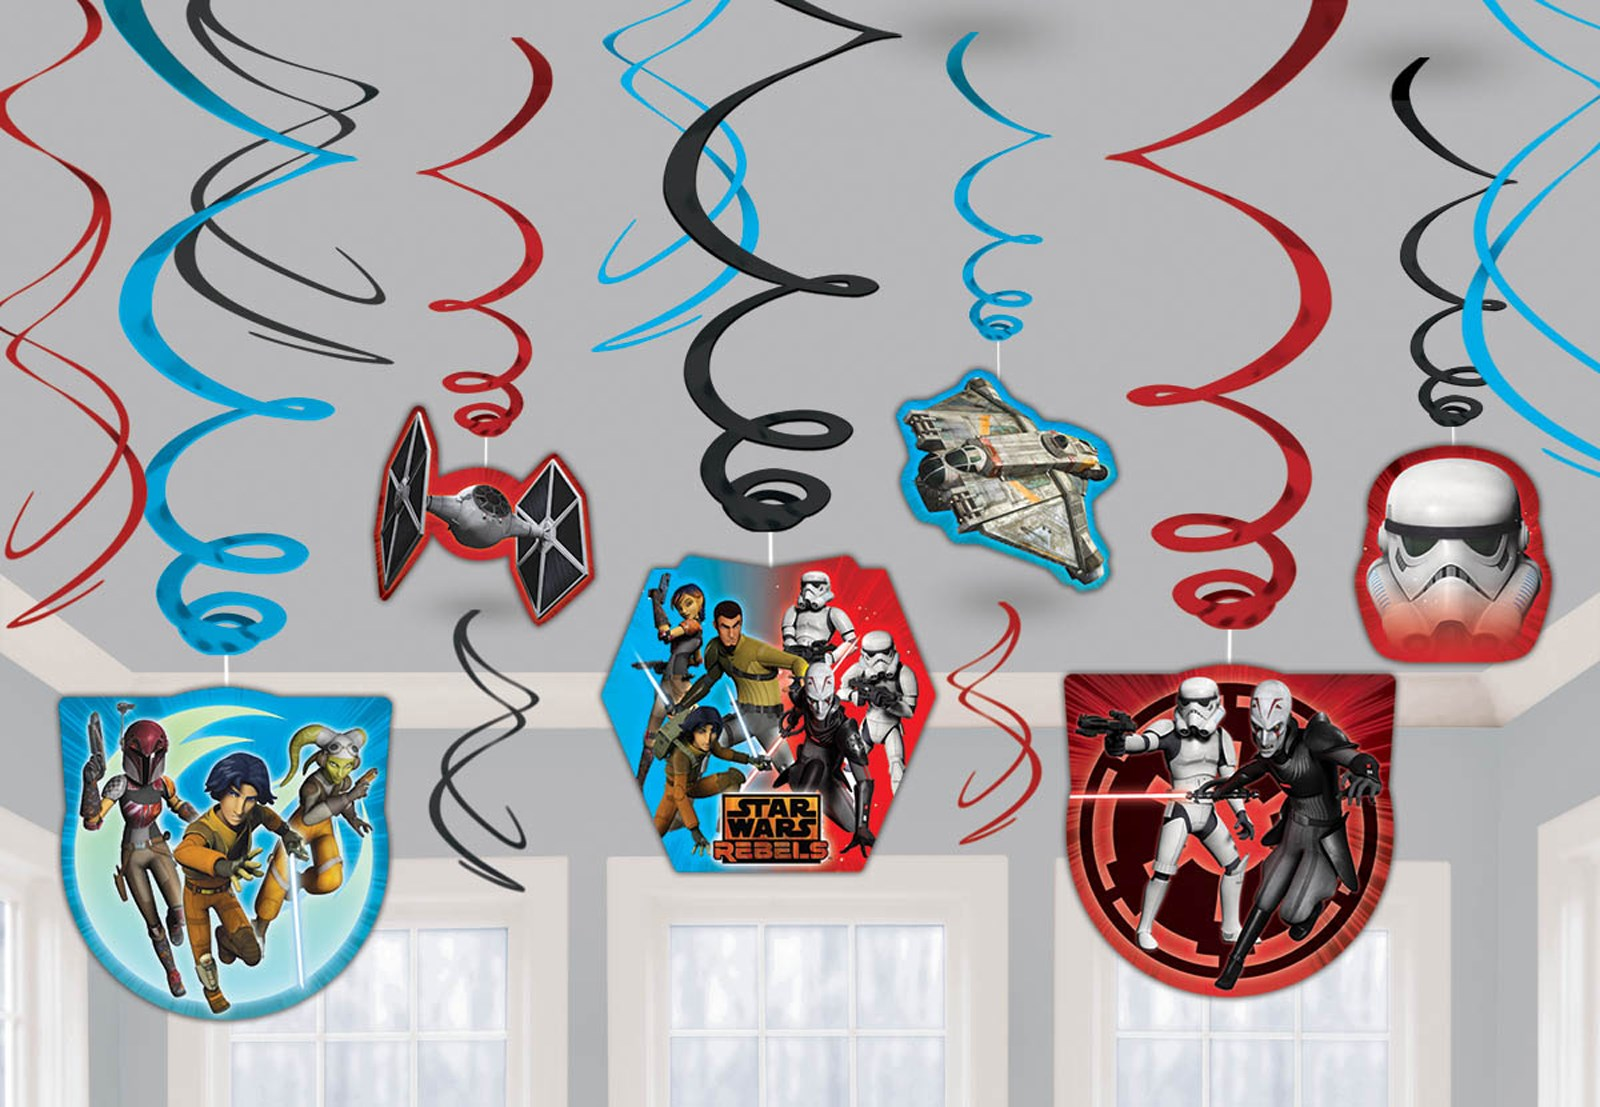 Star Wars Rebels party Swirl Decorations (12)